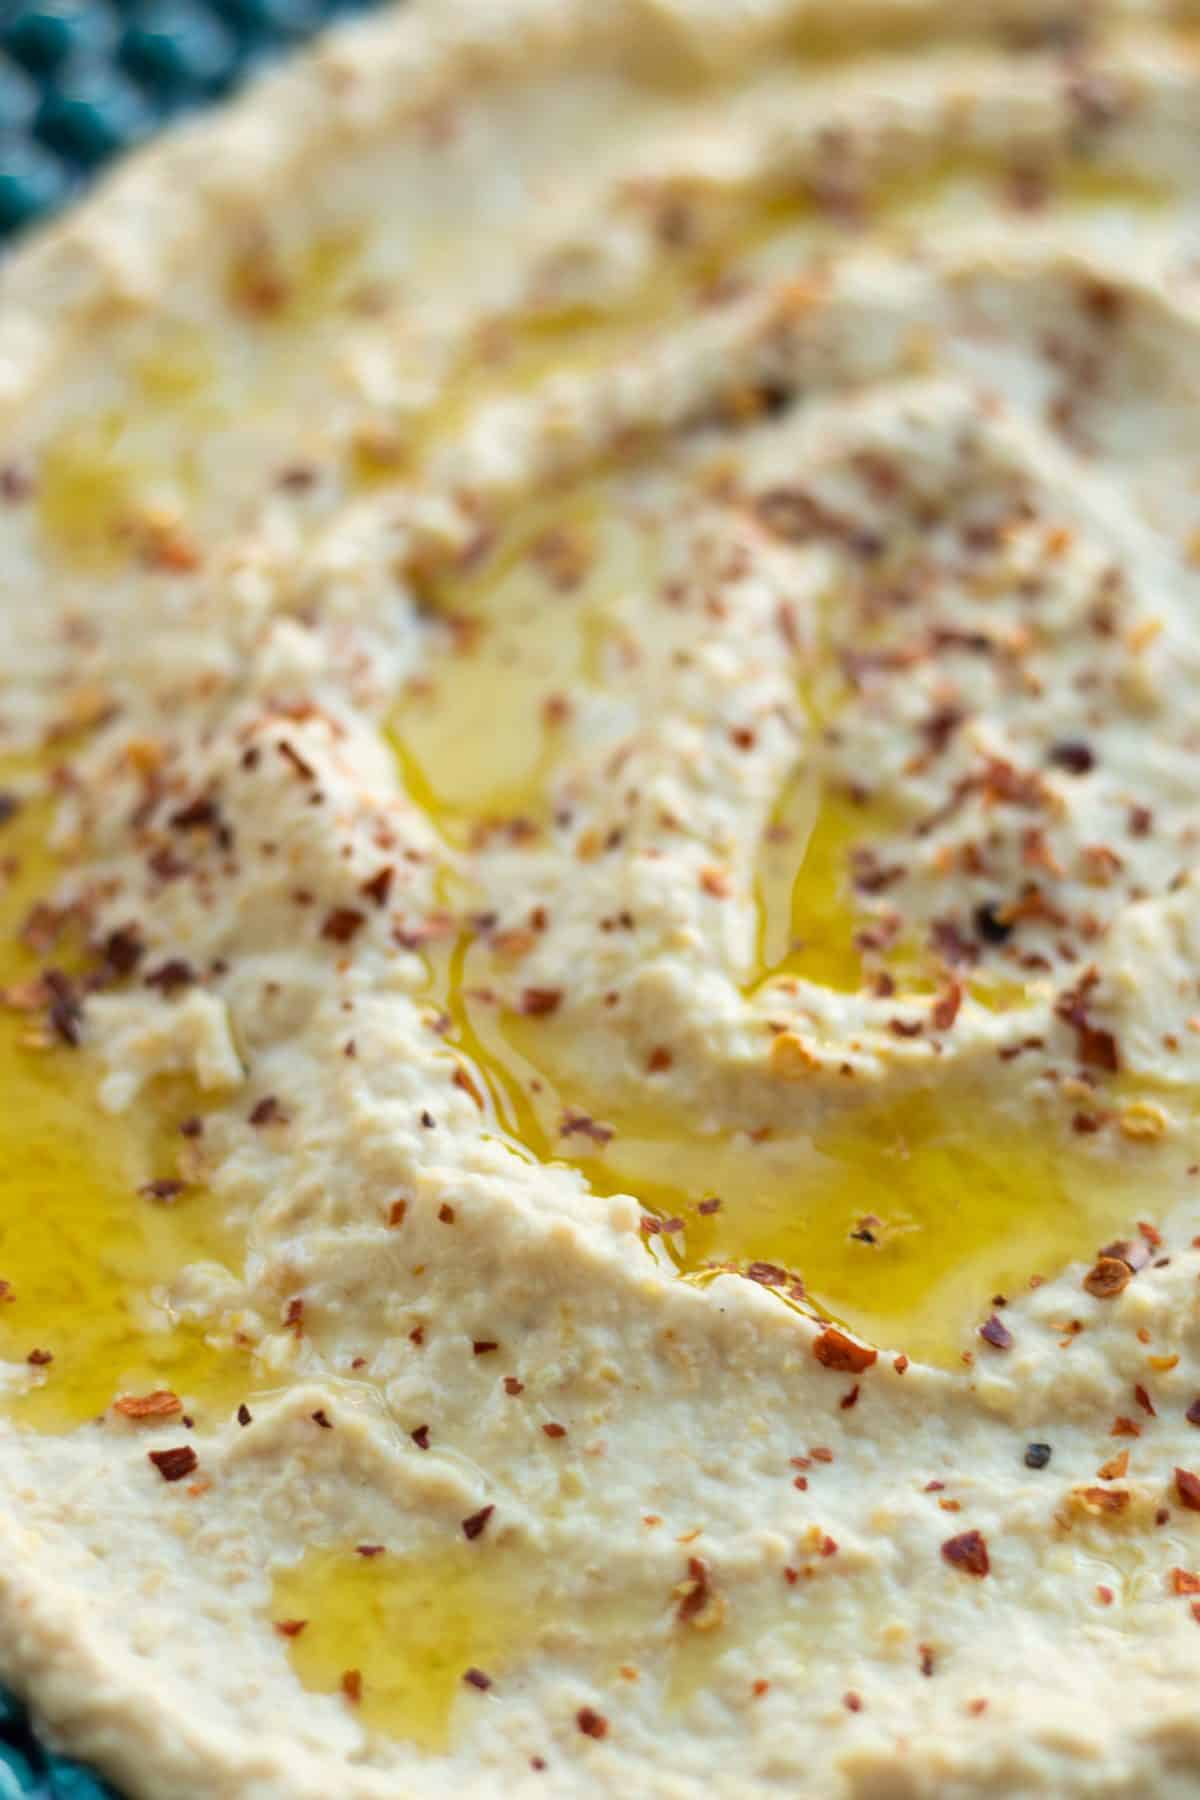 close up of hummus toppd with oliv oil and chili flakes on a blue green plate